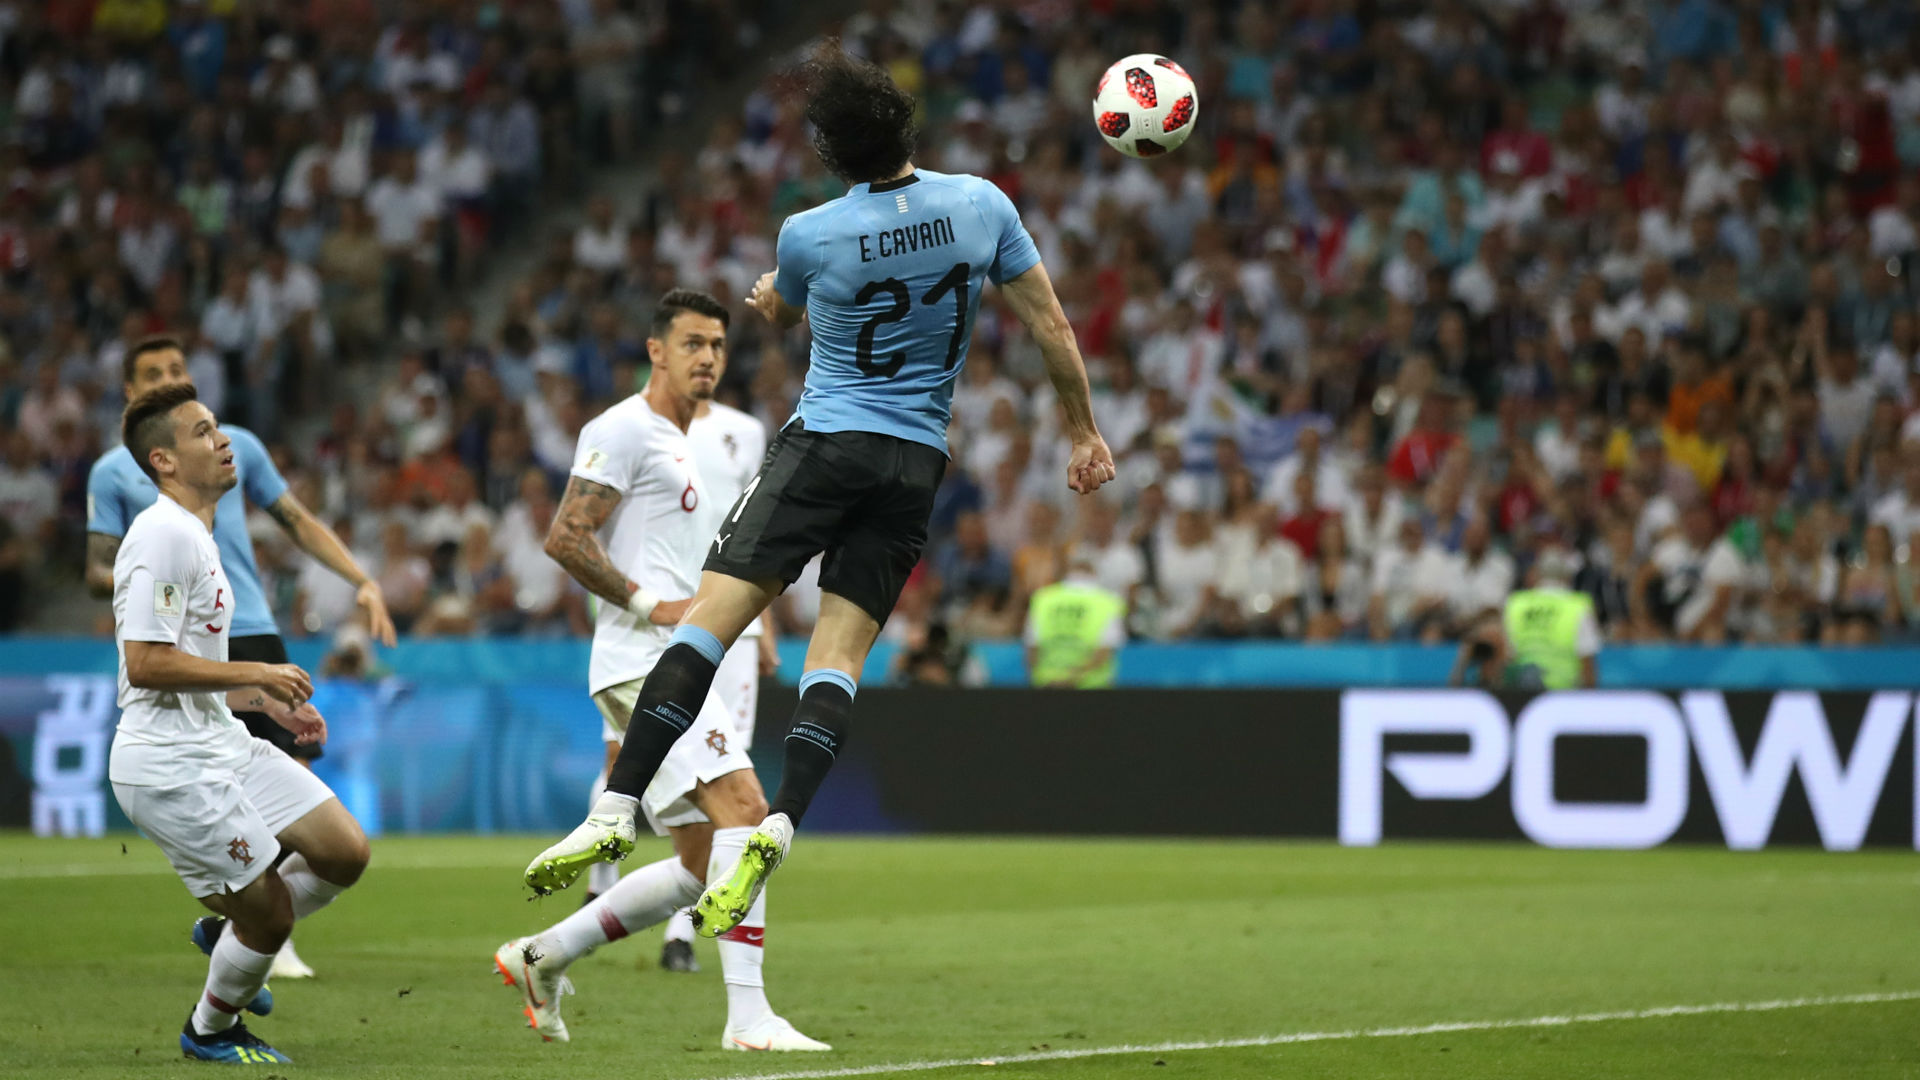 Cavani Uruguai Portugal Copa do Mundo 30 06 2018